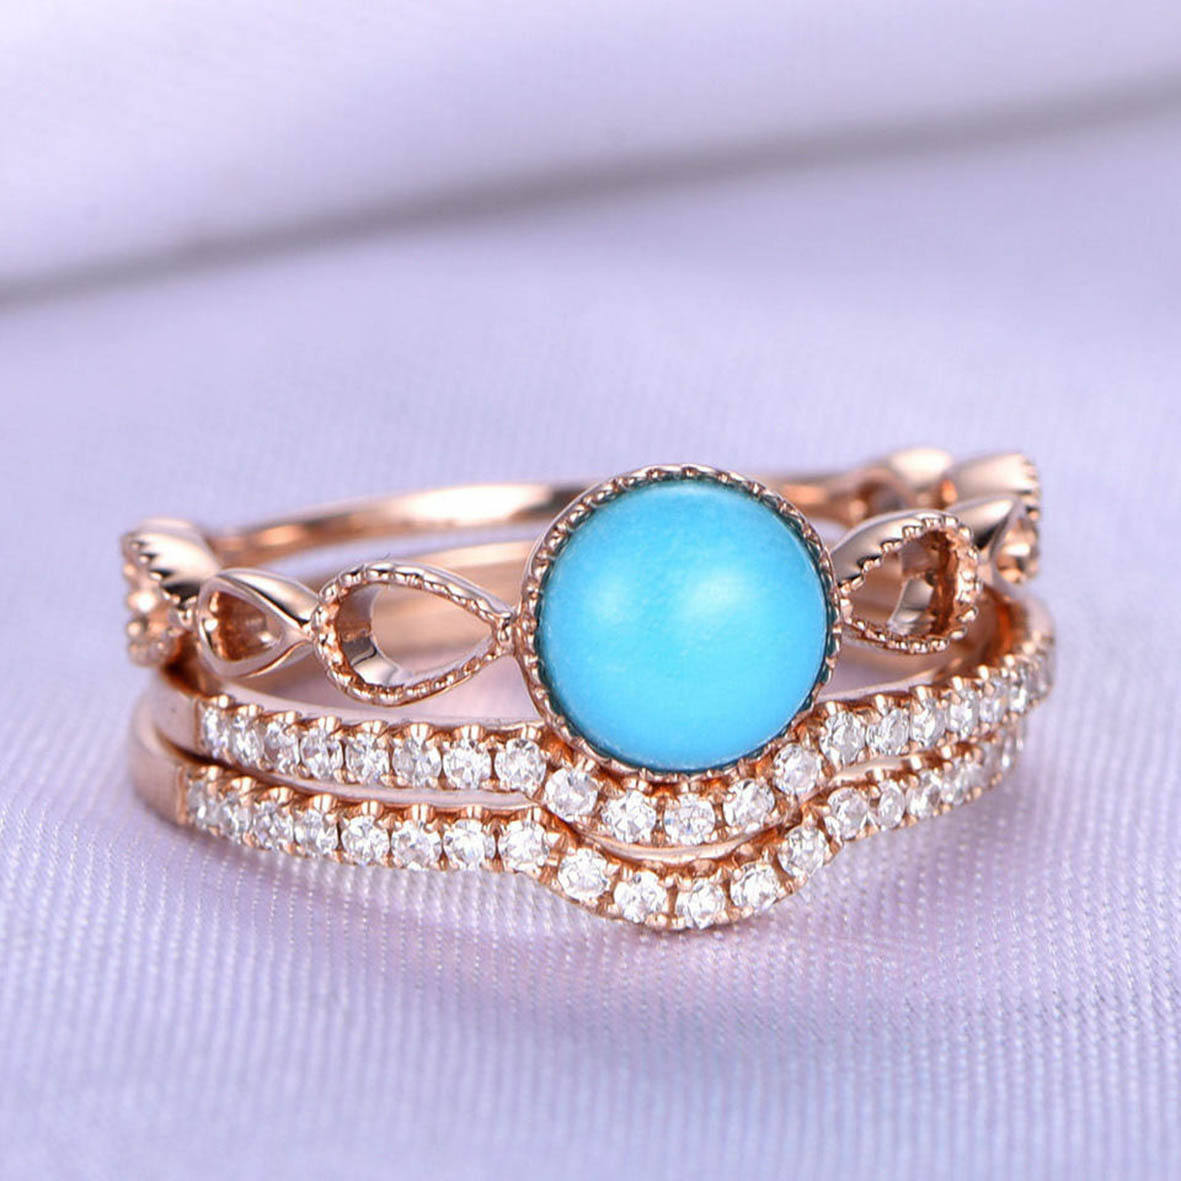 925 Sterling Silver Rose Gold Jewelry Natural Turquoise Wedding Ring Turquoise Stacking Rings